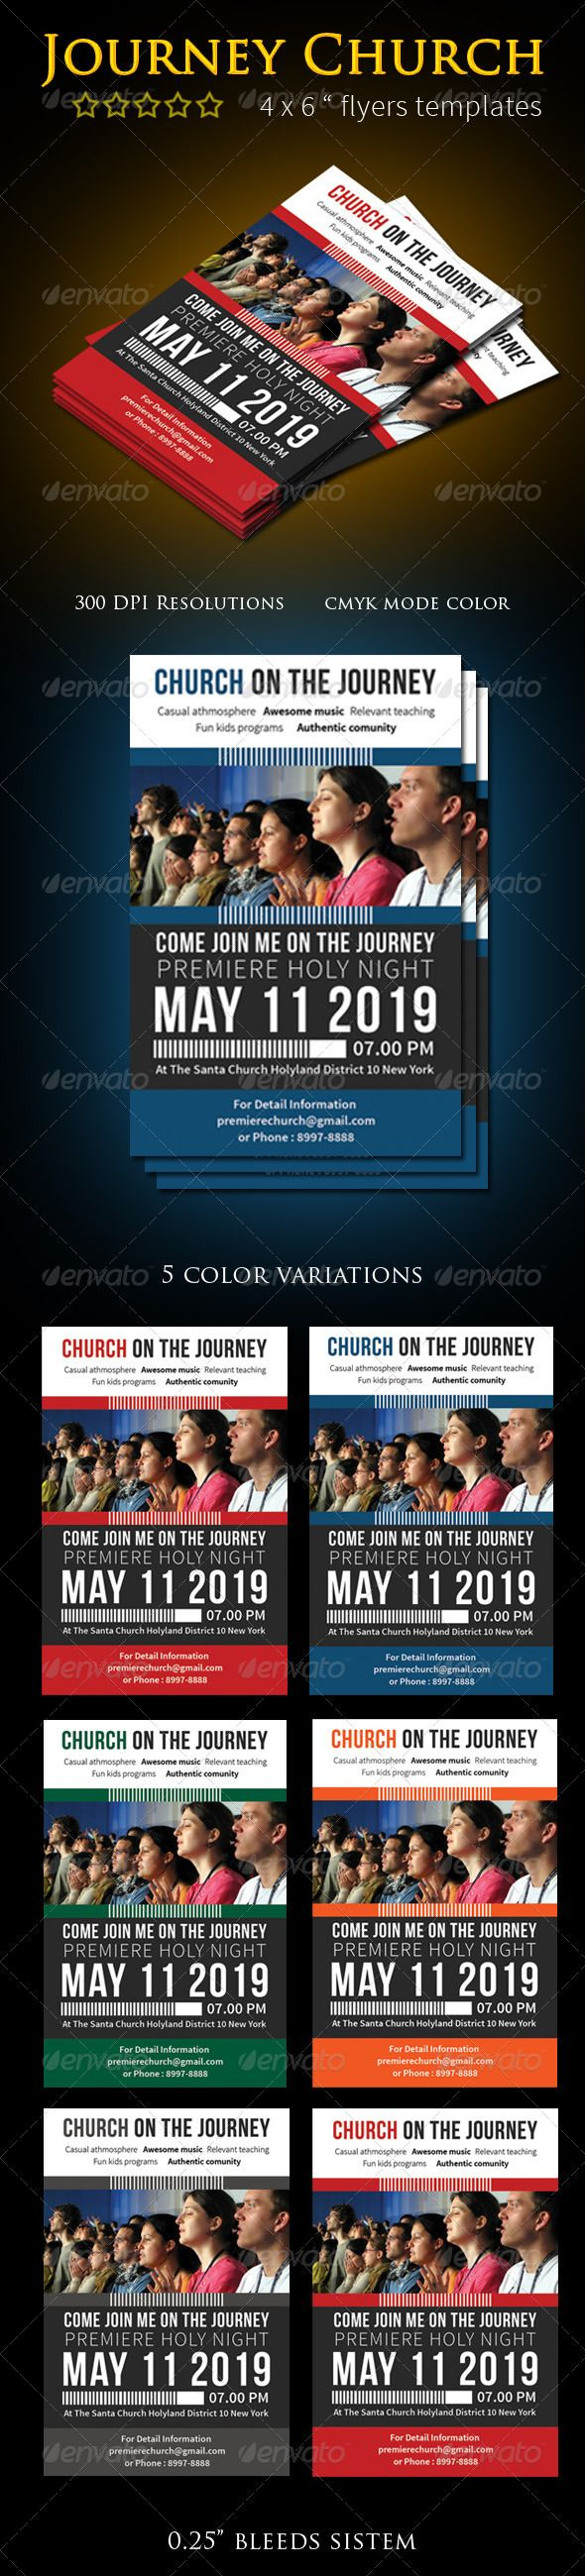 Journey Church Flyers — Photoshop PSD #church template #church journey • Available here → https://graphicriver.net/item/journey-church-flyers-/6762160?ref=pxcr